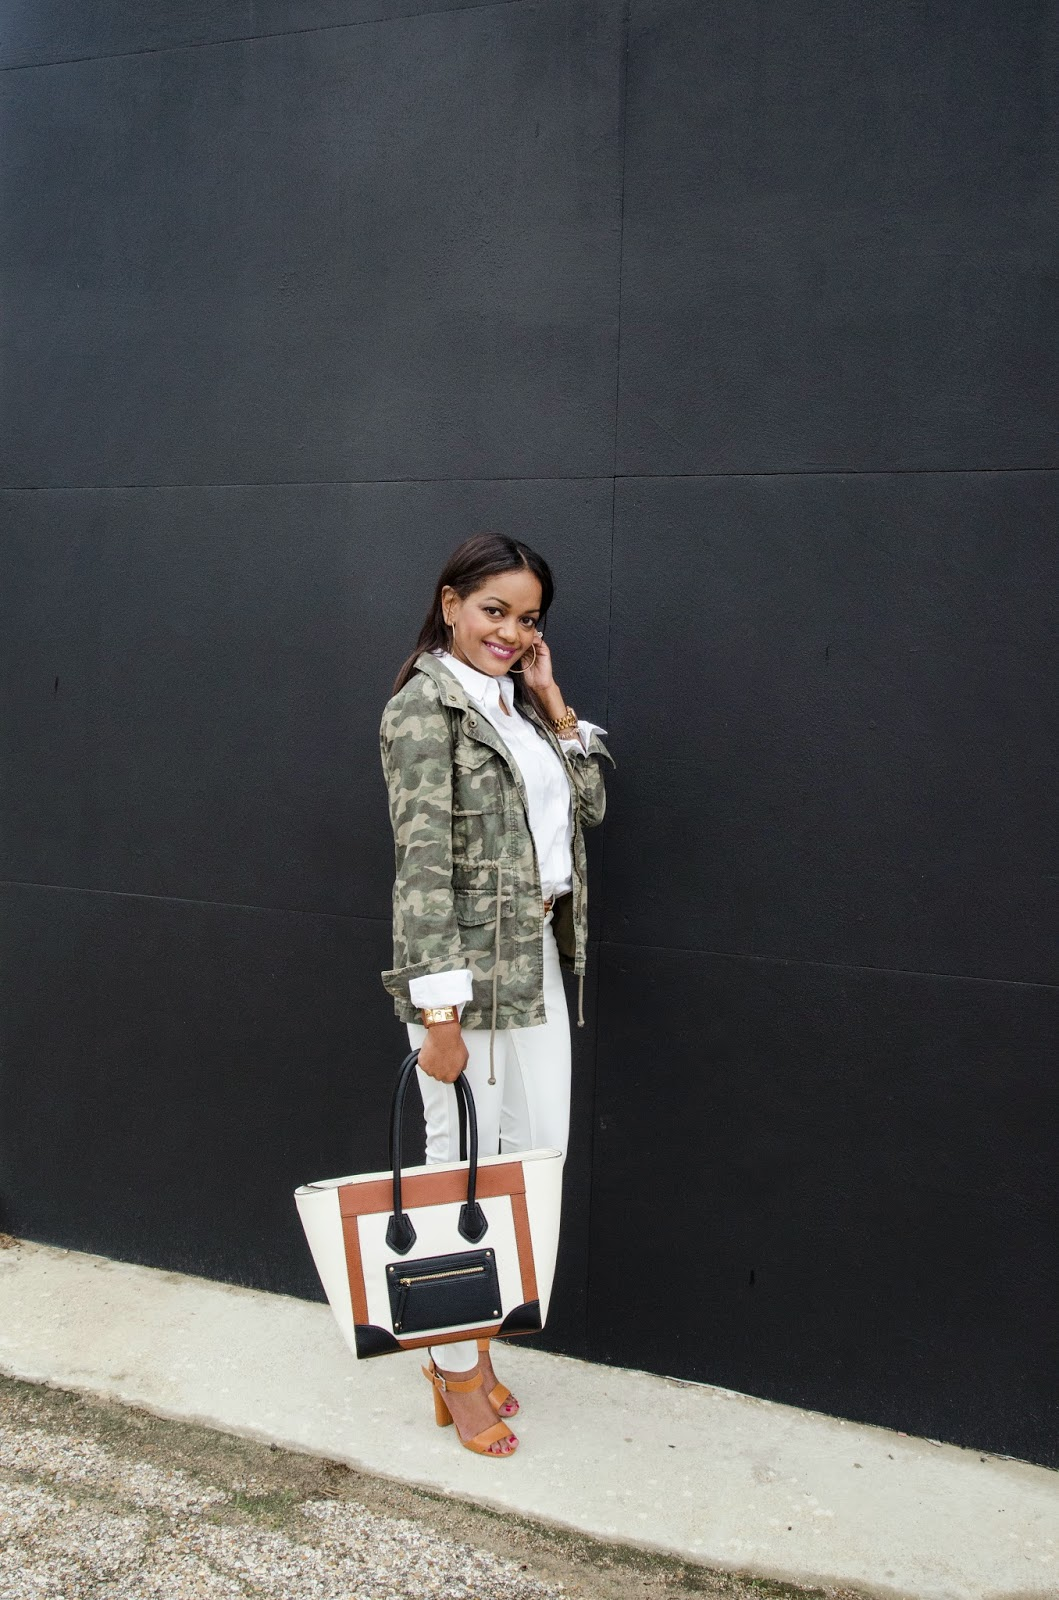 CAMO, CAMOUFLAGE JACKET, CAMO OUTFIT, WHITE JEANS, DESIGNER INSPIRED BAG, TARGET BAG, CELINE INSPIRED, DALLAS FASHION, DALLAS FASHION BLOGGER, FASHION BLOGGER, BLACK FASHION BLOGGER, MOM FASHION BLOGGER, JUST FAB SANDALS, SPRING FASHION